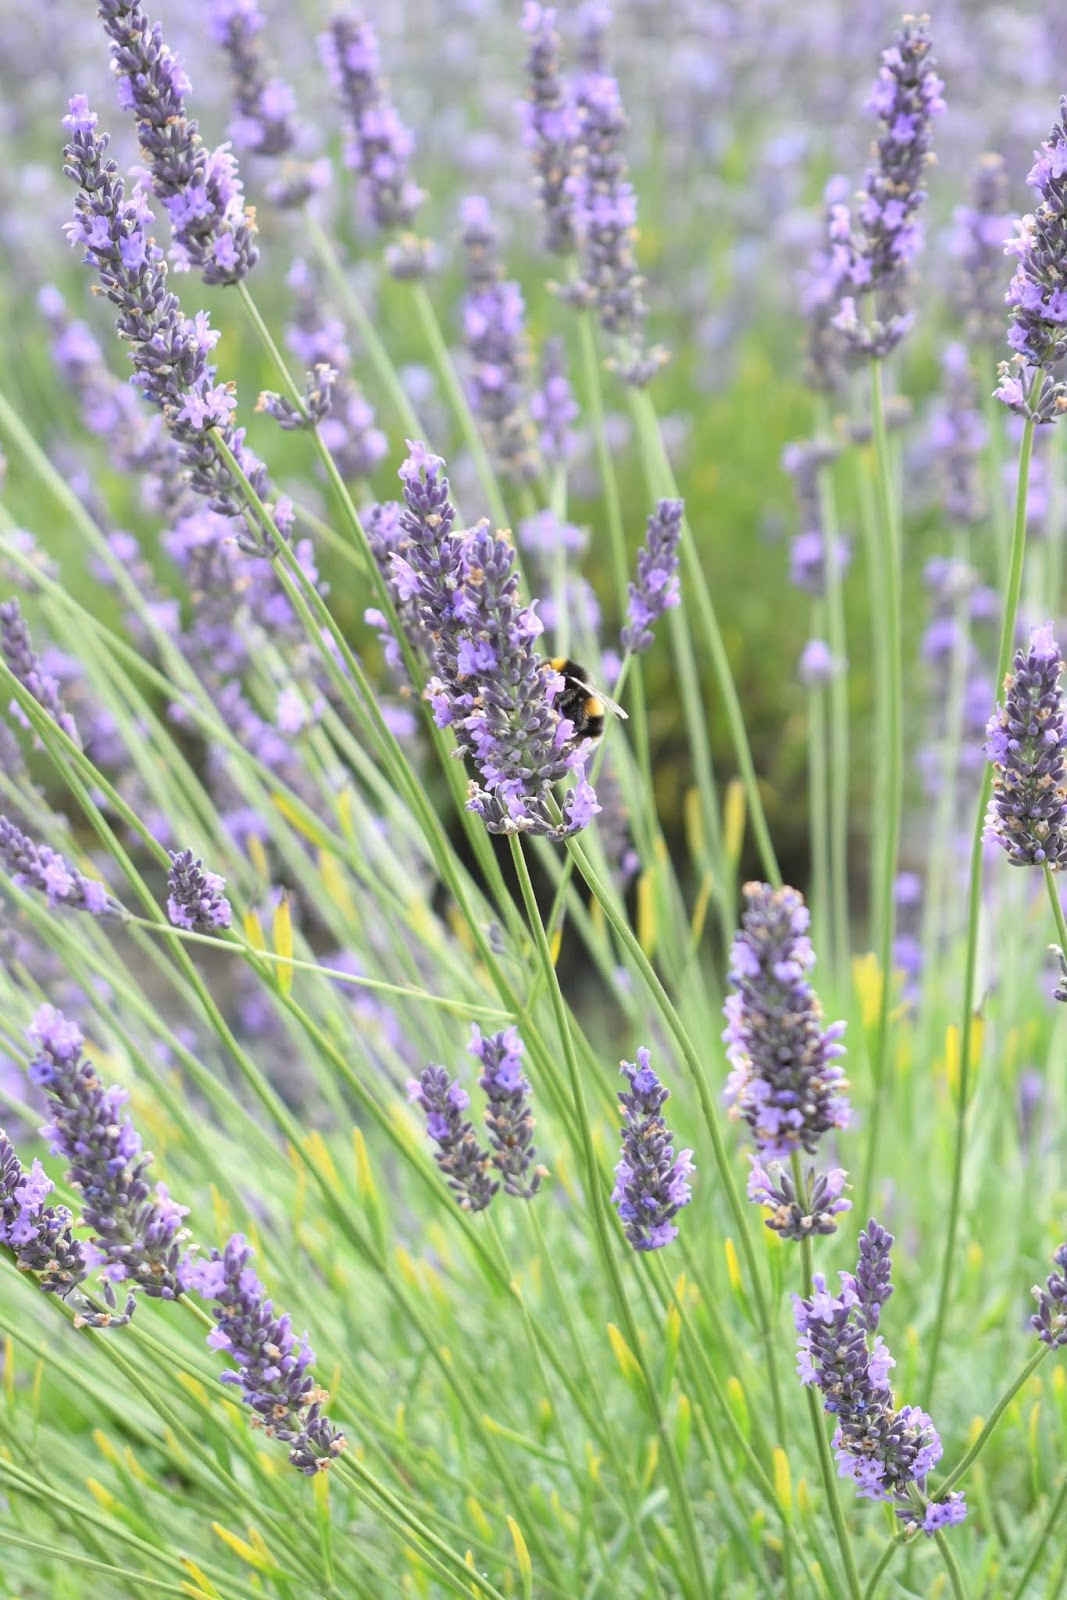 Where to Find Lavender Fields in the North of England - Trip to Yorkshire Lavender